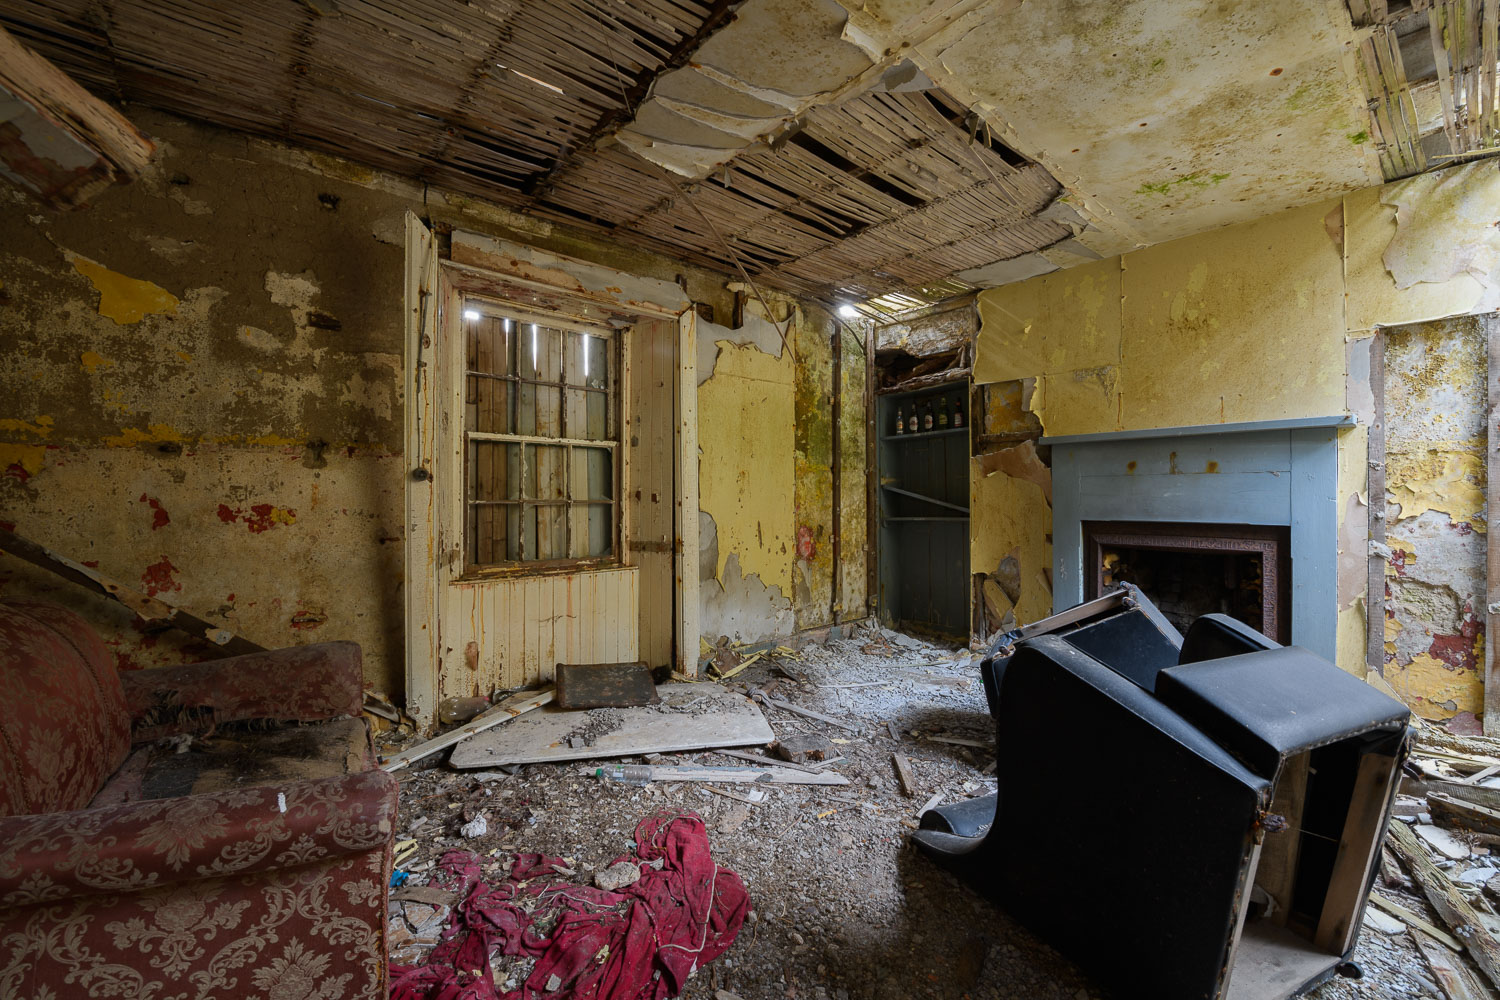 The inside of the disused tea rooms in a derelict building, Ails